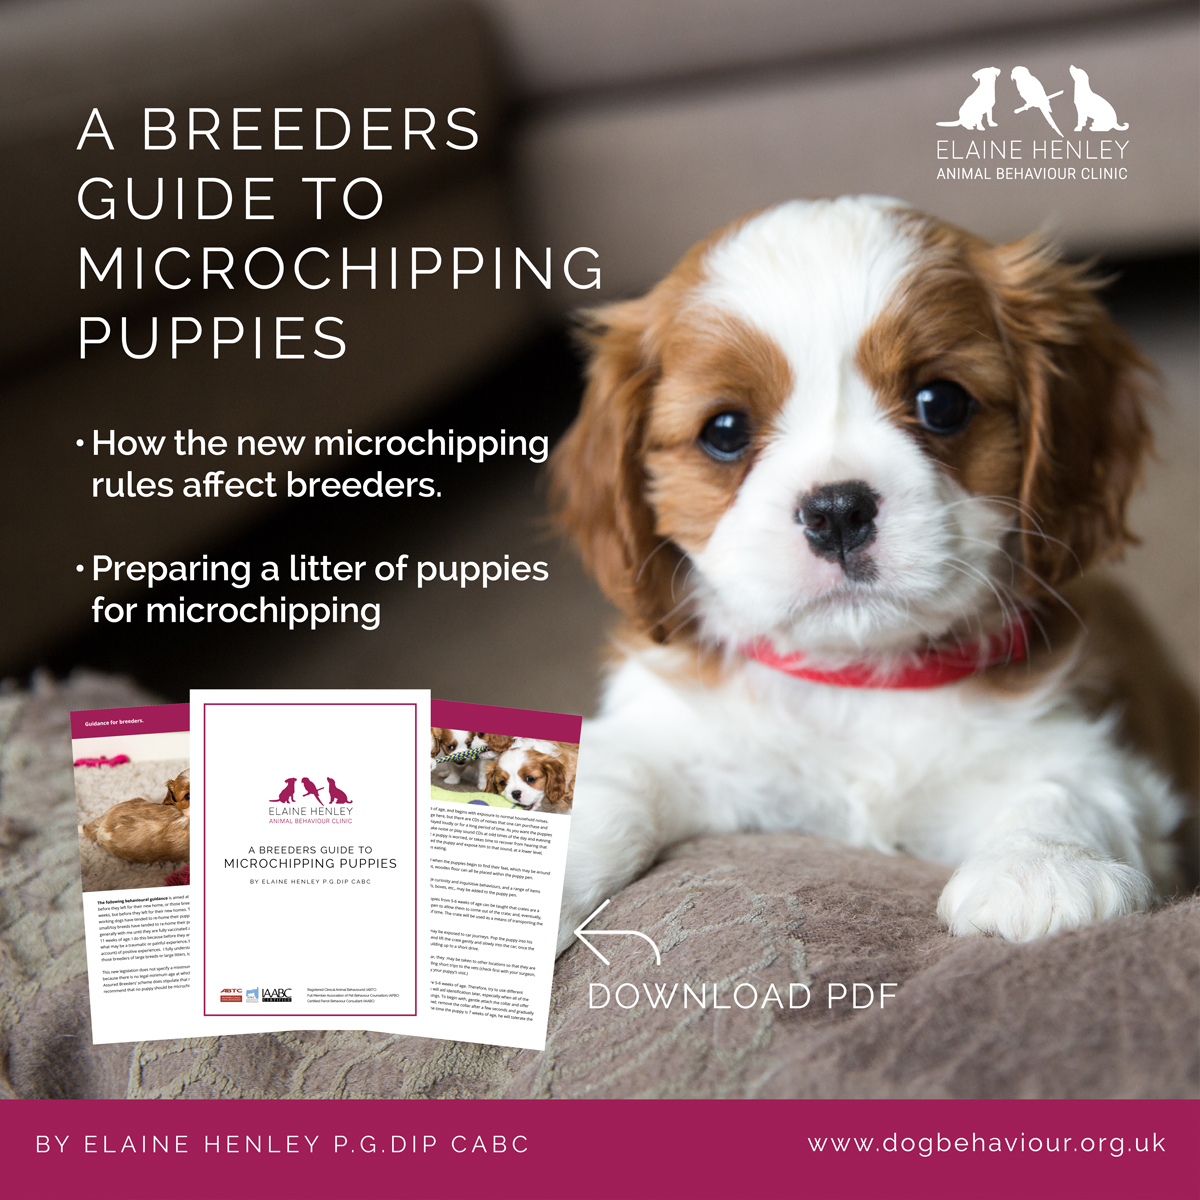 A Breeders Guide To Microchipping Puppies In The UK